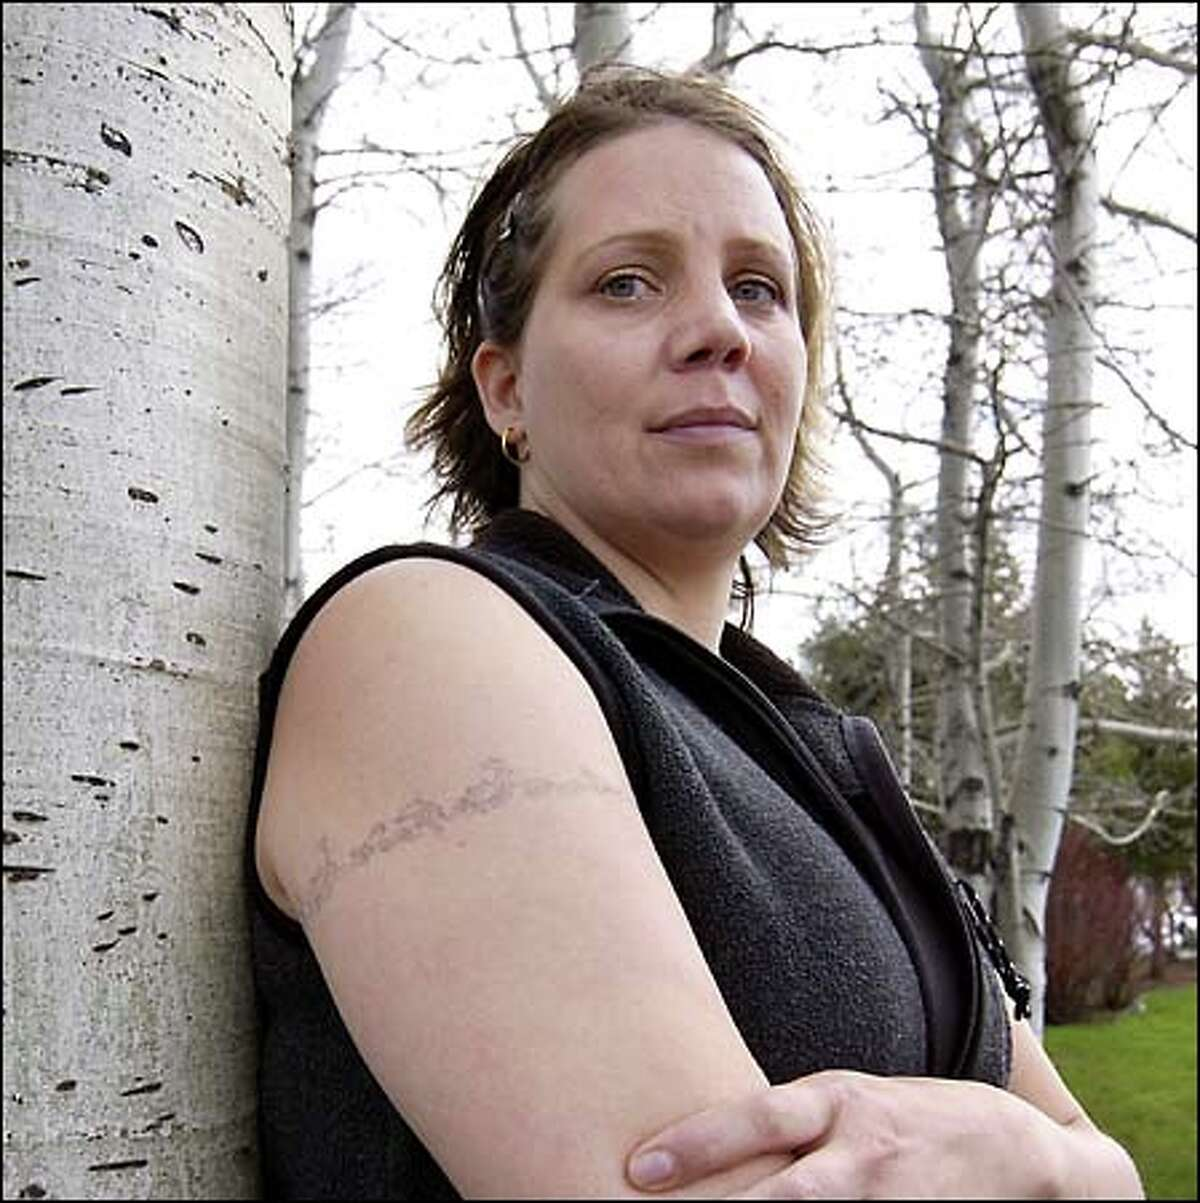 Dental hygienist Christine Cooper believes she contracted hepatitis C sometime between 1995 and 1997, after getting two tattoos at the same tattoo salon.